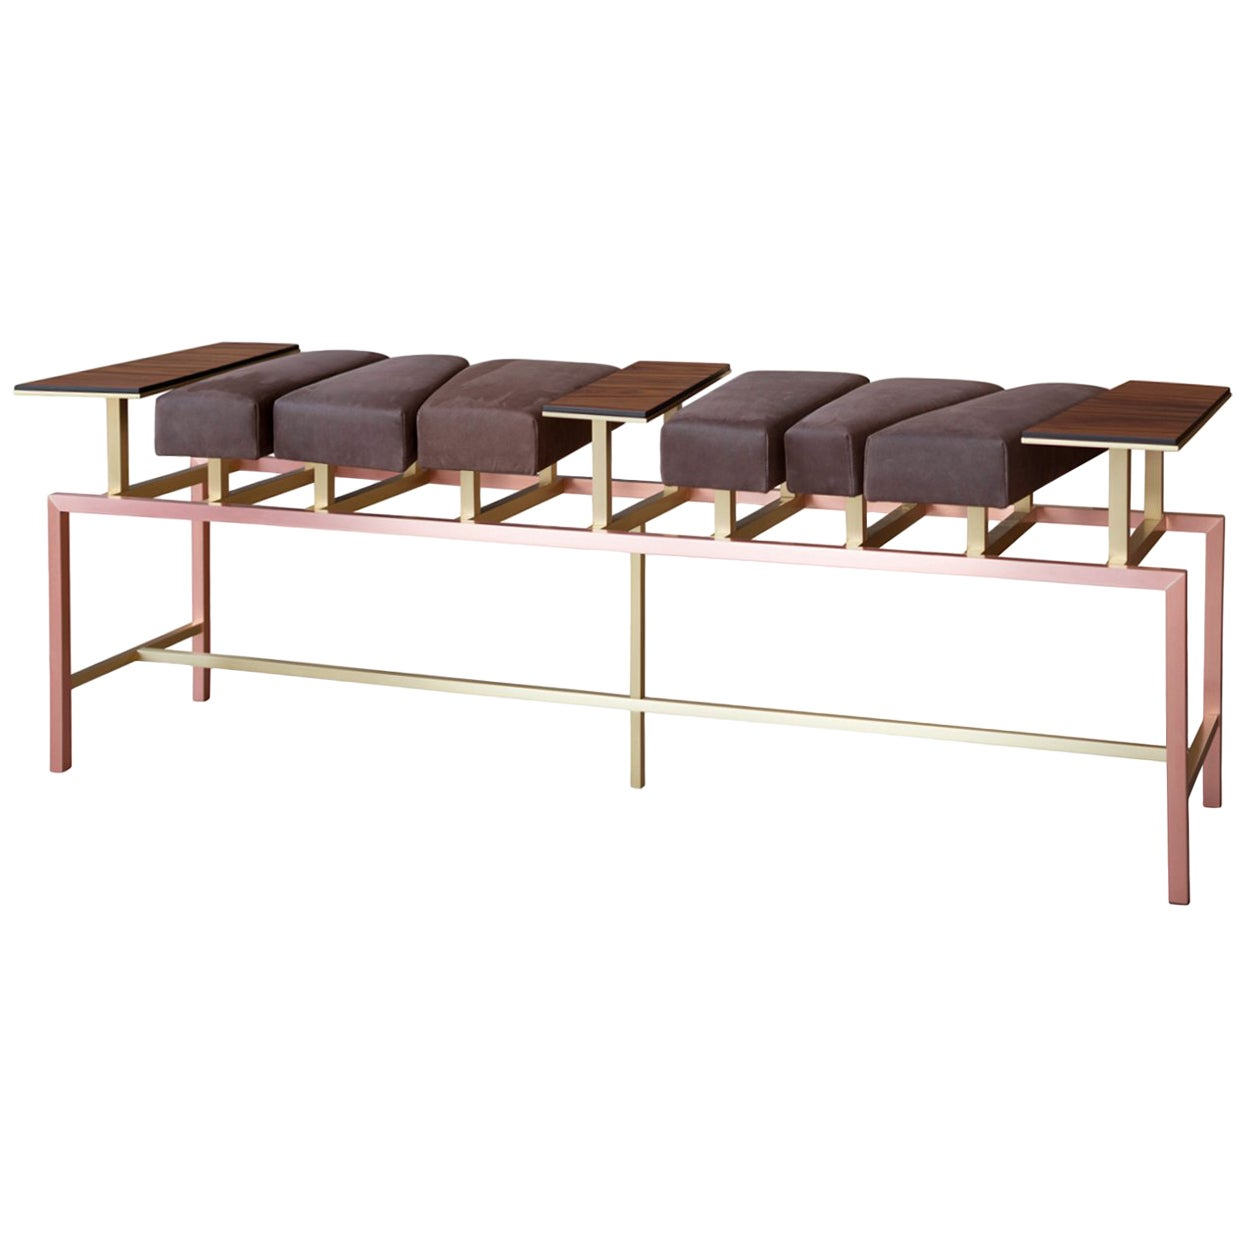 Swing, Copper and Brass Contemporary Bench with Nubuck Leather and Rosewood